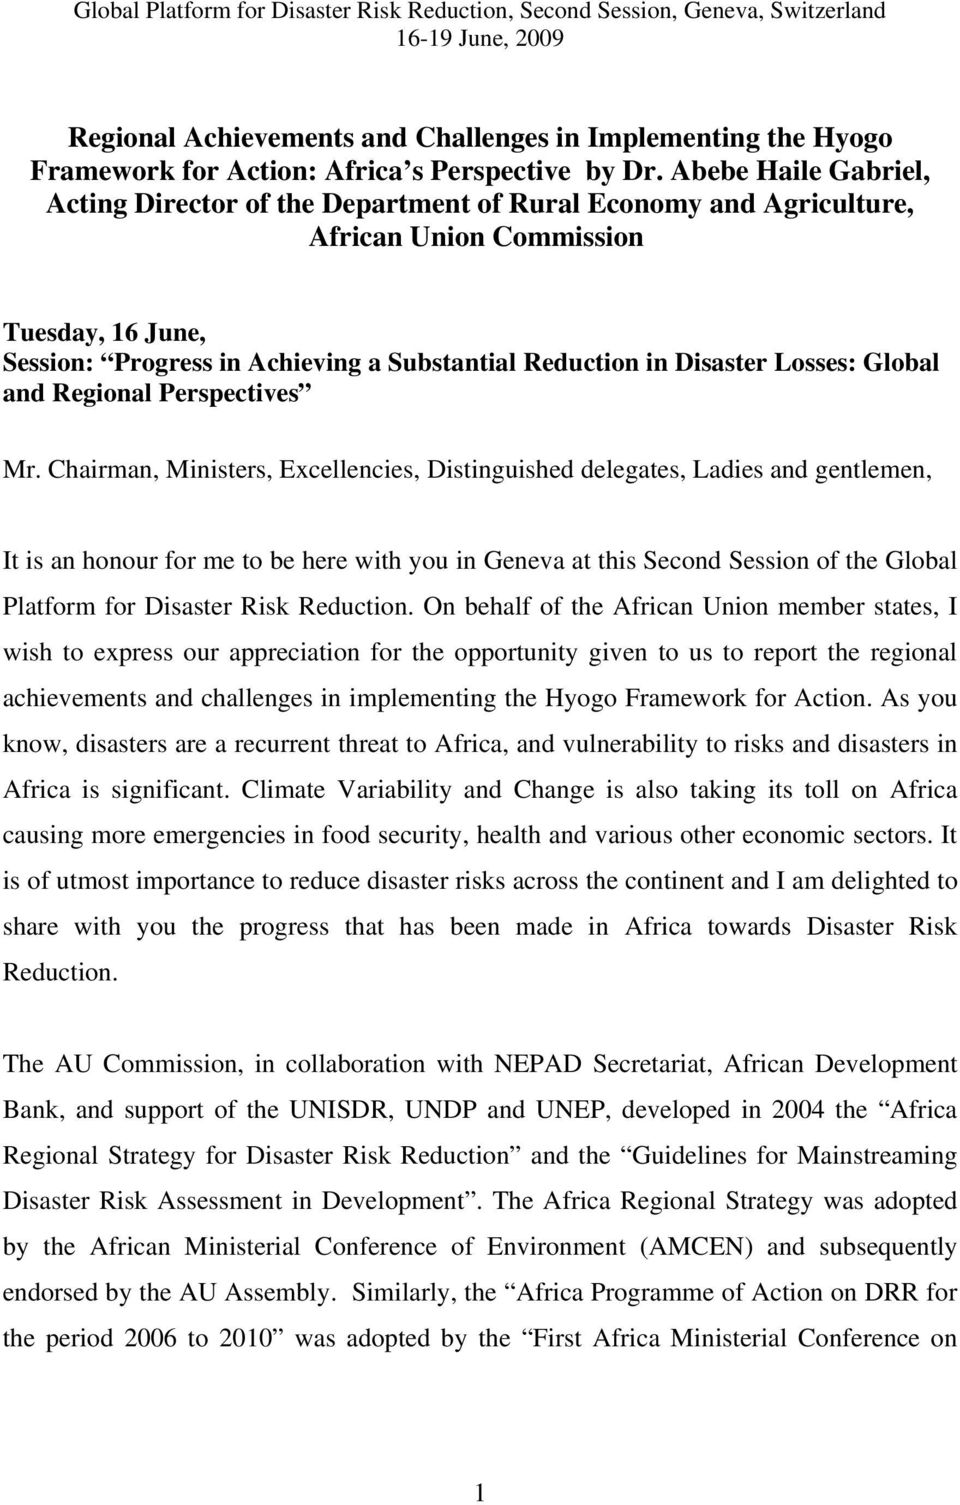 Abebe Haile Gabriel, Acting Director of the Department of Rural Economy and Agriculture, African Union Commission Tuesday, 16 June, Session: Progress in Achieving a Substantial Reduction in Disaster